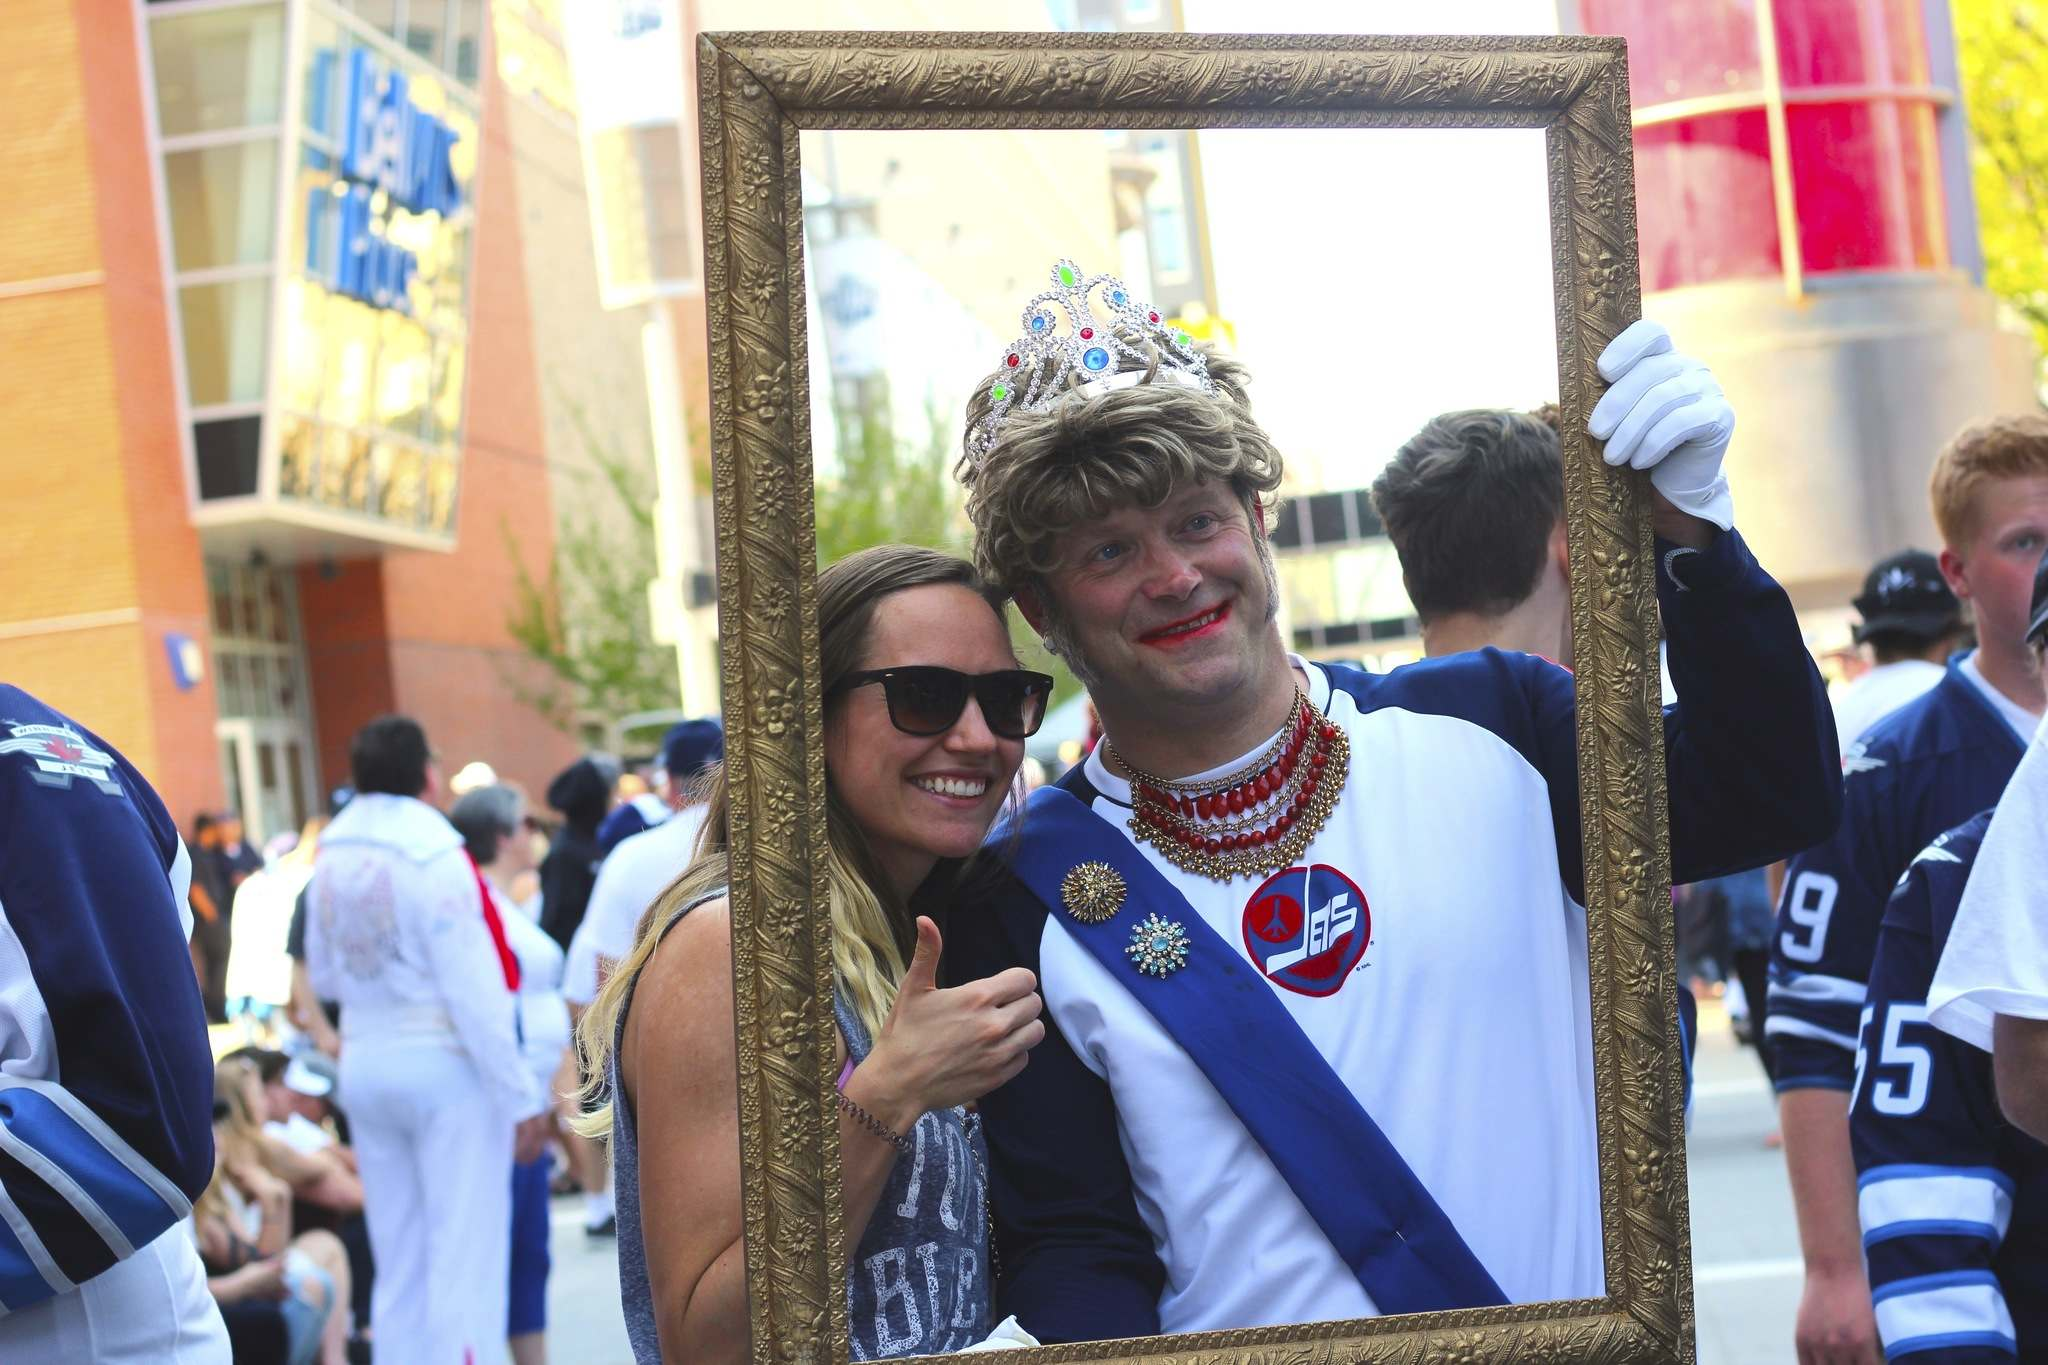 JESSICA BOTELHO-URBANSKI / WINNIPEG FREE PRESS</p><p>Mikaela Kroeker poses with Queen Elizabeth II (also known as Cam Scott) during the Jets' Whiteout street party. </p>